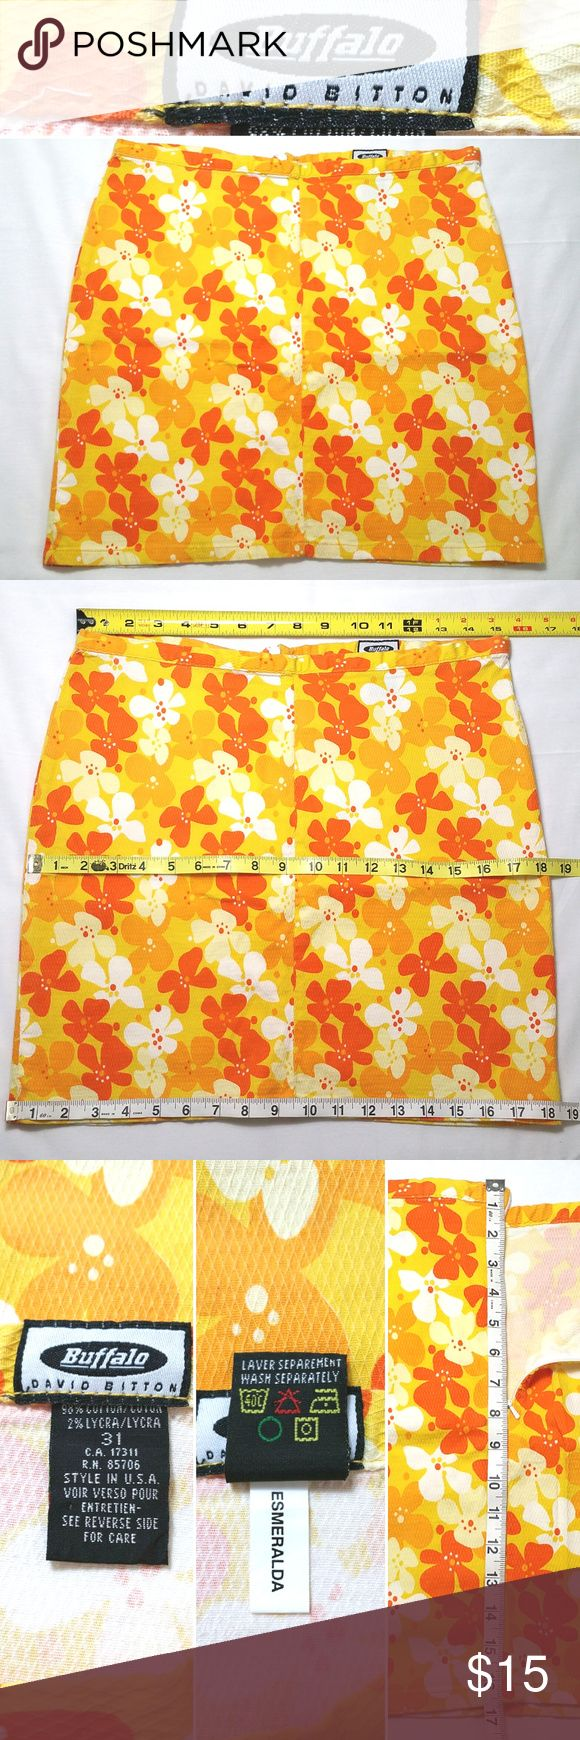 """Buffalo David Bitton Floral Straight Skirt Stretch Condition: Gently used, no flaws. Size:  31 Pattern/Color:  Flora/Orange, Yellow Style: Straight Lined: No Pockets: No Material: 98% Cotton, 2% Lycra Other Details: back zipper Care: Machine wash  Approx. measurements (laying flat)  Waist: 15.25""""  Hips: 18.25"""" Length measured from back:  16.25""""  SKU 0217/11 / CLE Buffalo David Bitton Skirts Pencil"""